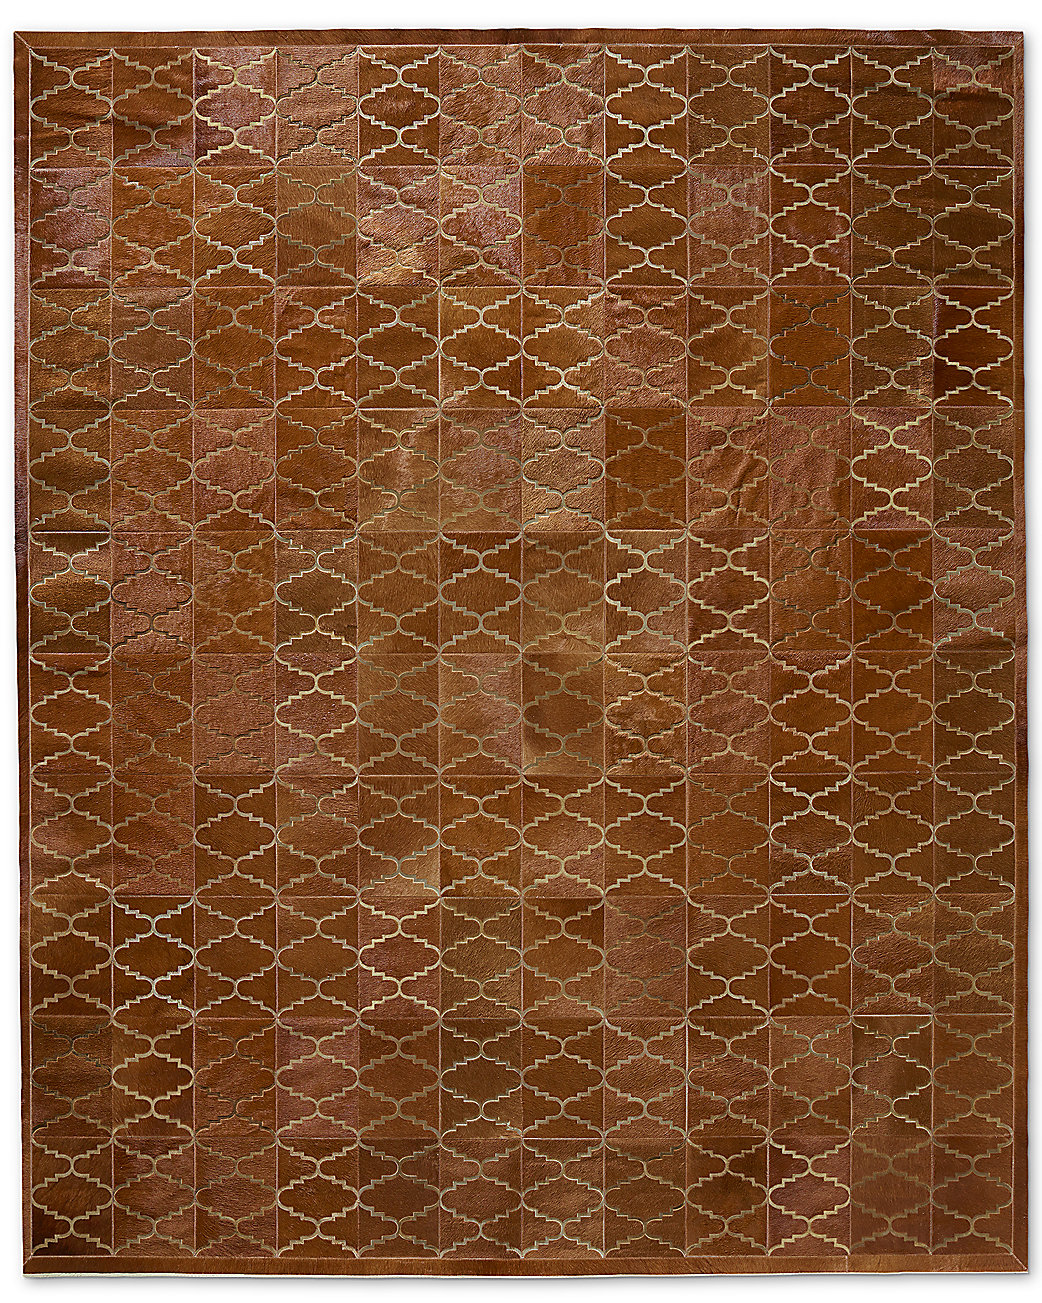 Etched Moroccan Tile Cowhide Rug - Caramel